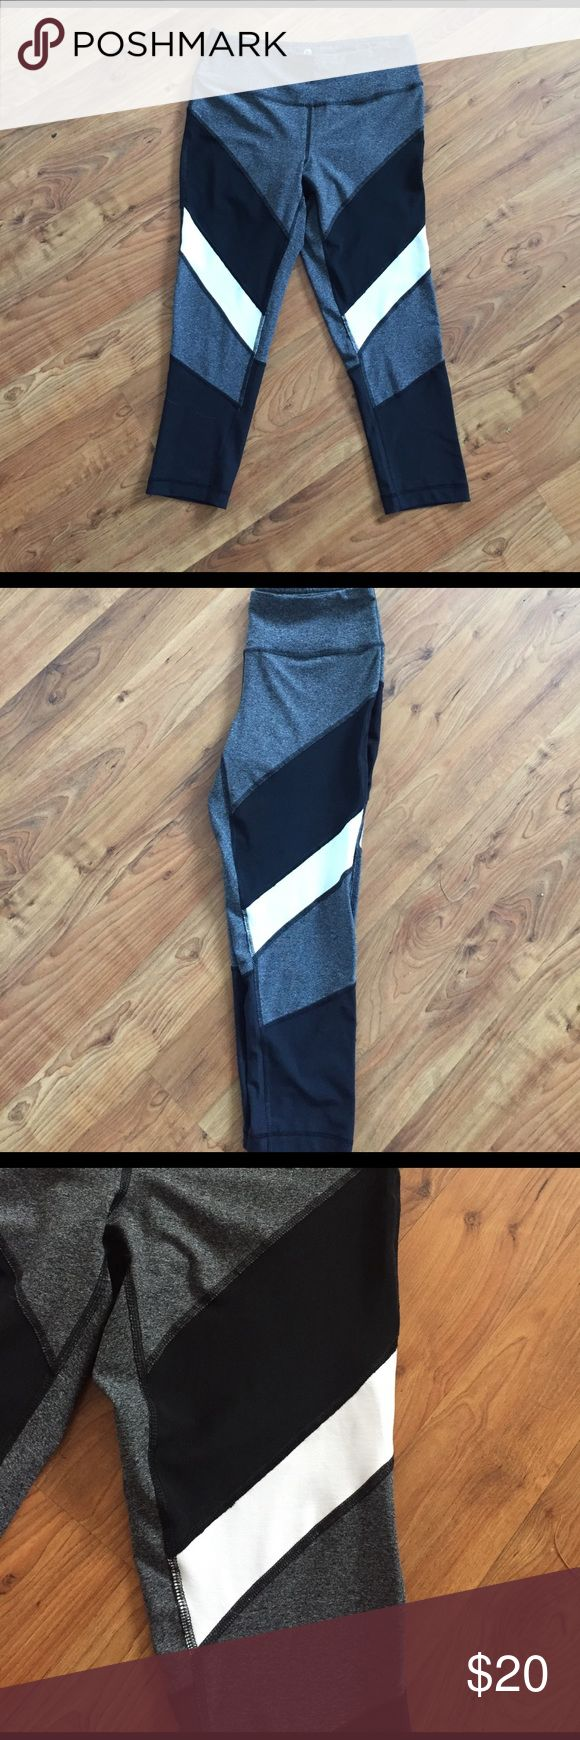 90 Degree workout pants 90 Degree by reflex workout pants! These are super cute and got them as a present and only worn 1 time. They aren't my style so I'm looking to sell! The upper black portion of the pants are mesh! 90 Degree by Reflex Pants Leggings